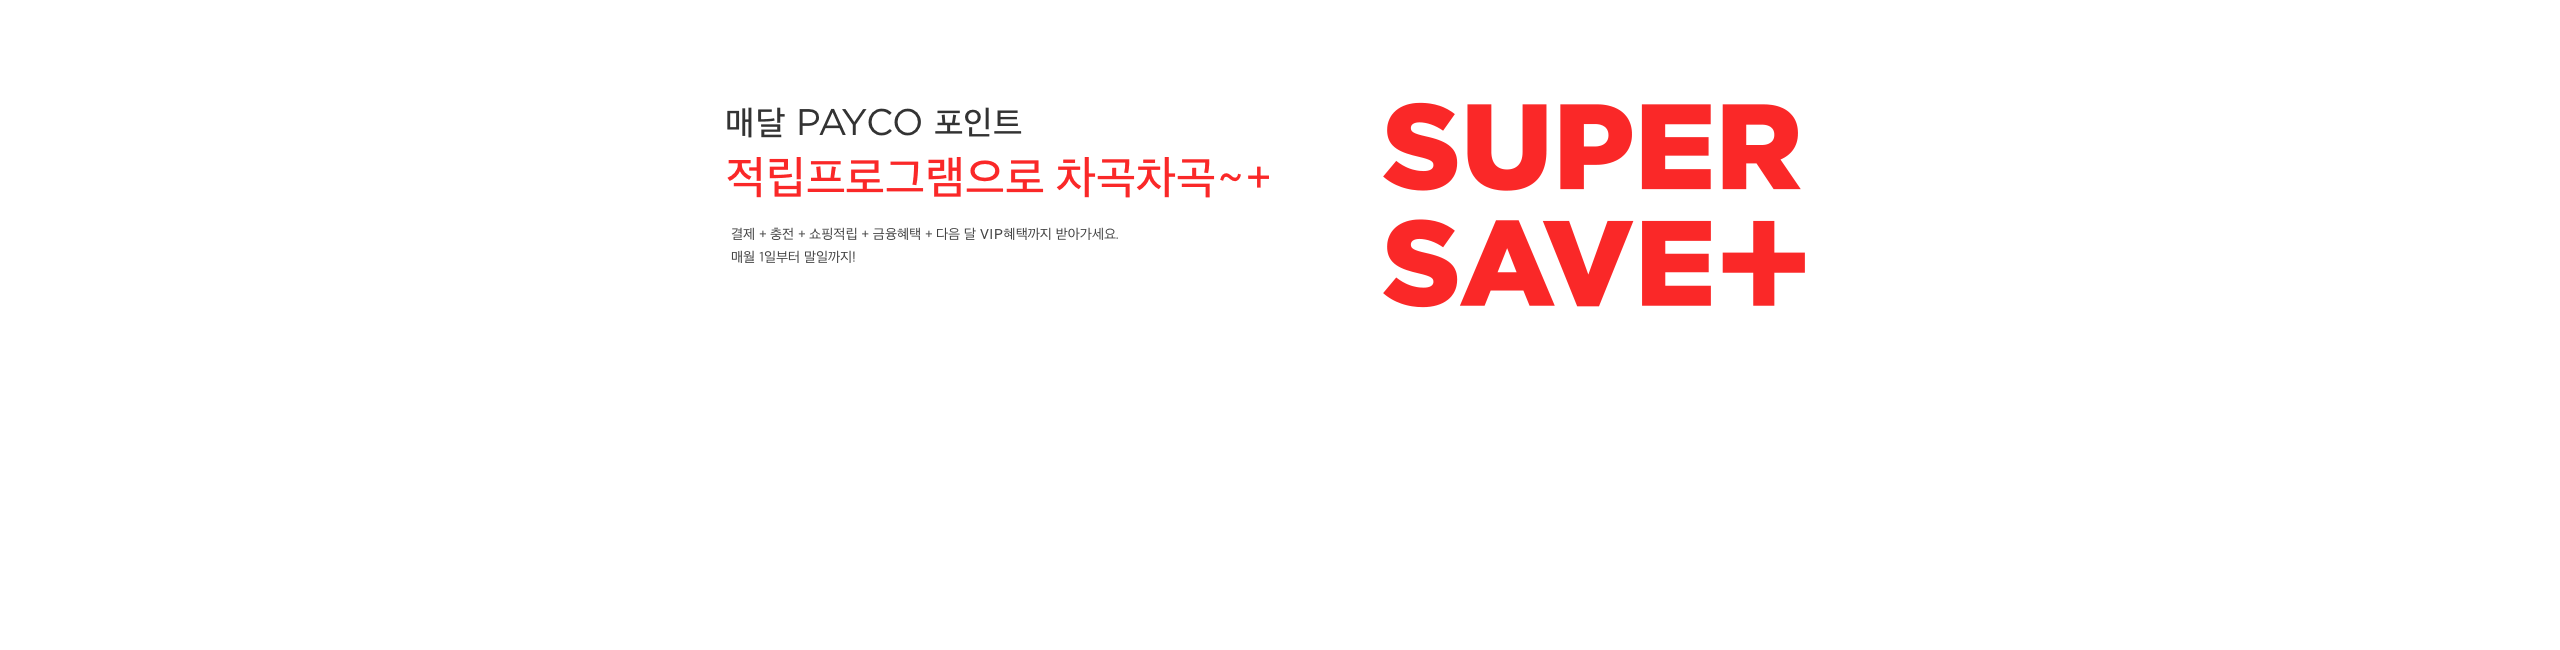 4월 PAYCO SUPER SAVE+